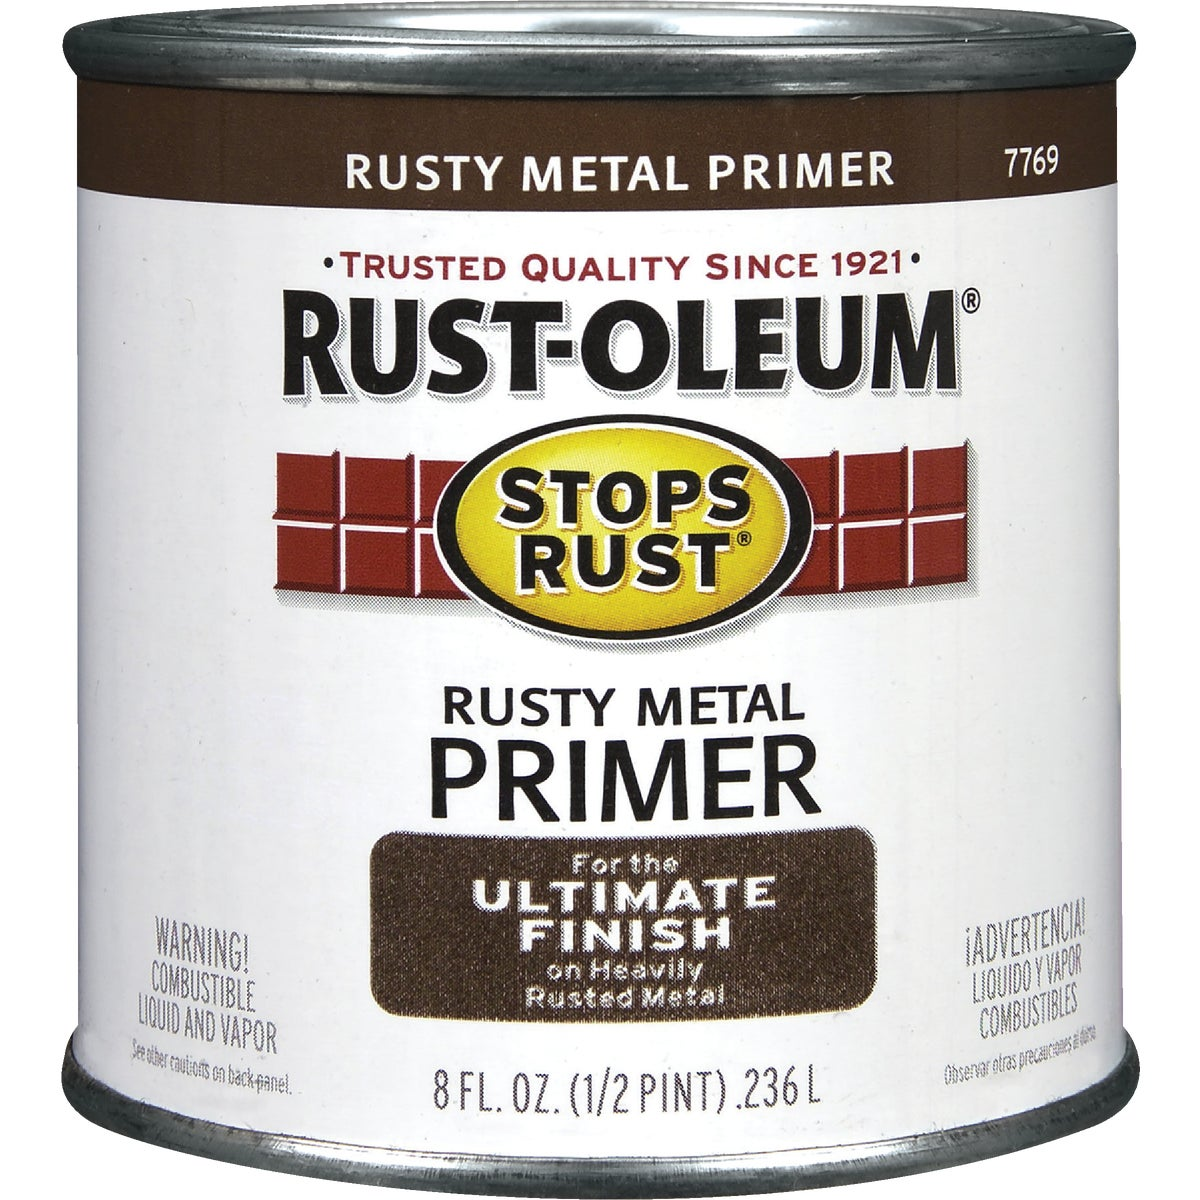 RED RUSTY METAL PRIMER - 7769-730 by Rustoleum